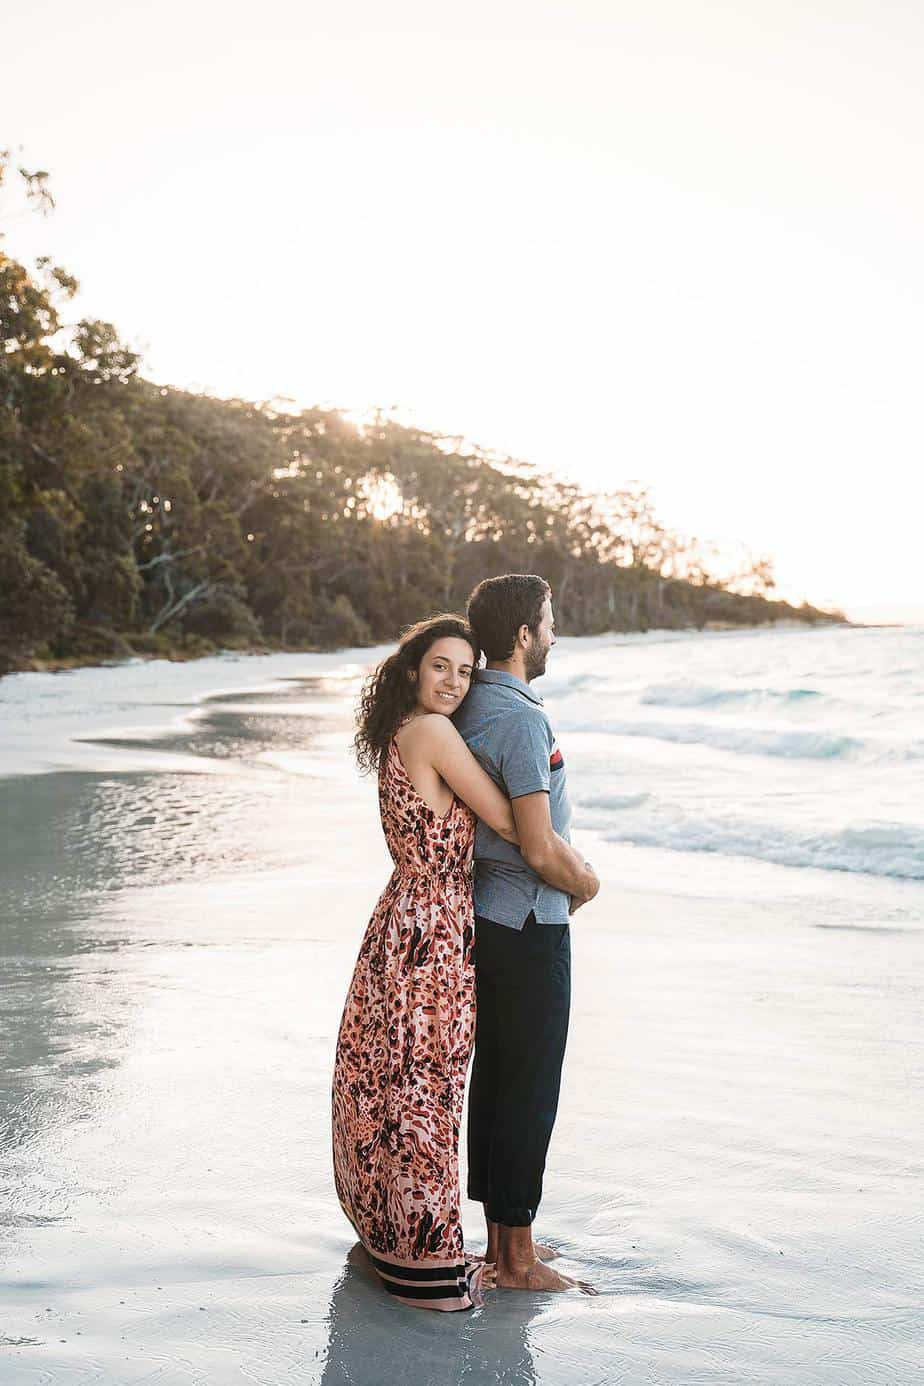 Couple_francesca_federico_jarvisbay_photography_francescabandiera_Sydney_Francesca_Bandiera_photographer_1